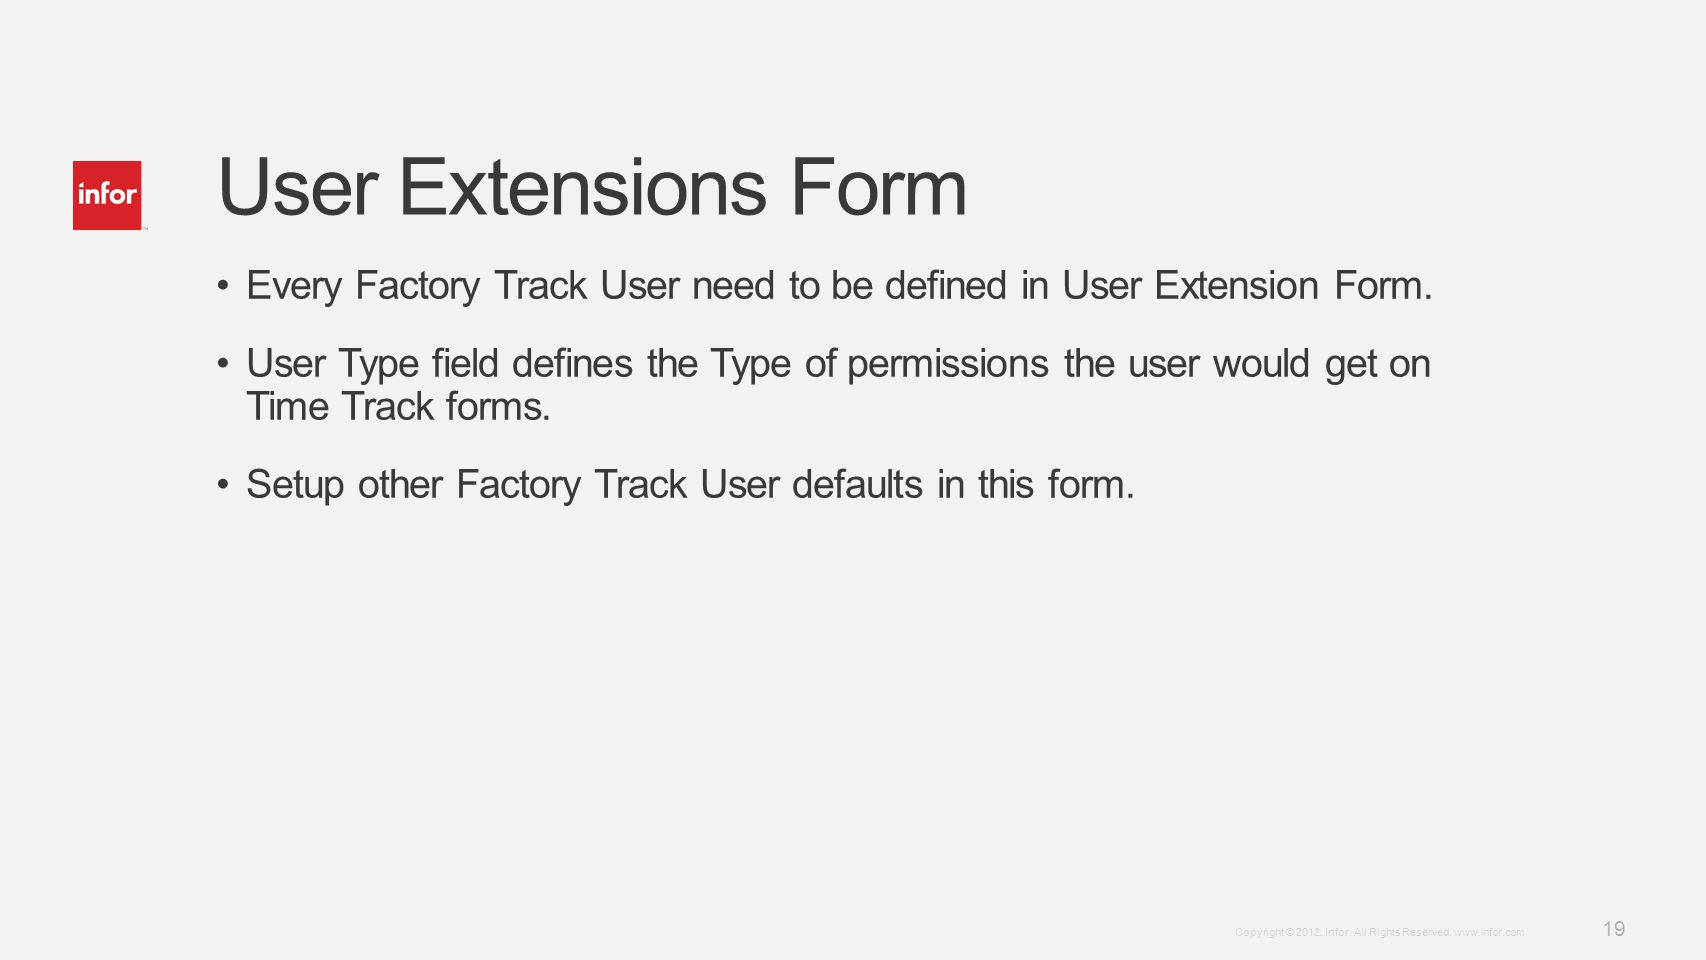 Template v4 September 27, 2012 19 Copyright © 2012. Infor. All Rights Reserved. www.infor.com User Extensions Form Every Factory Track User need to be